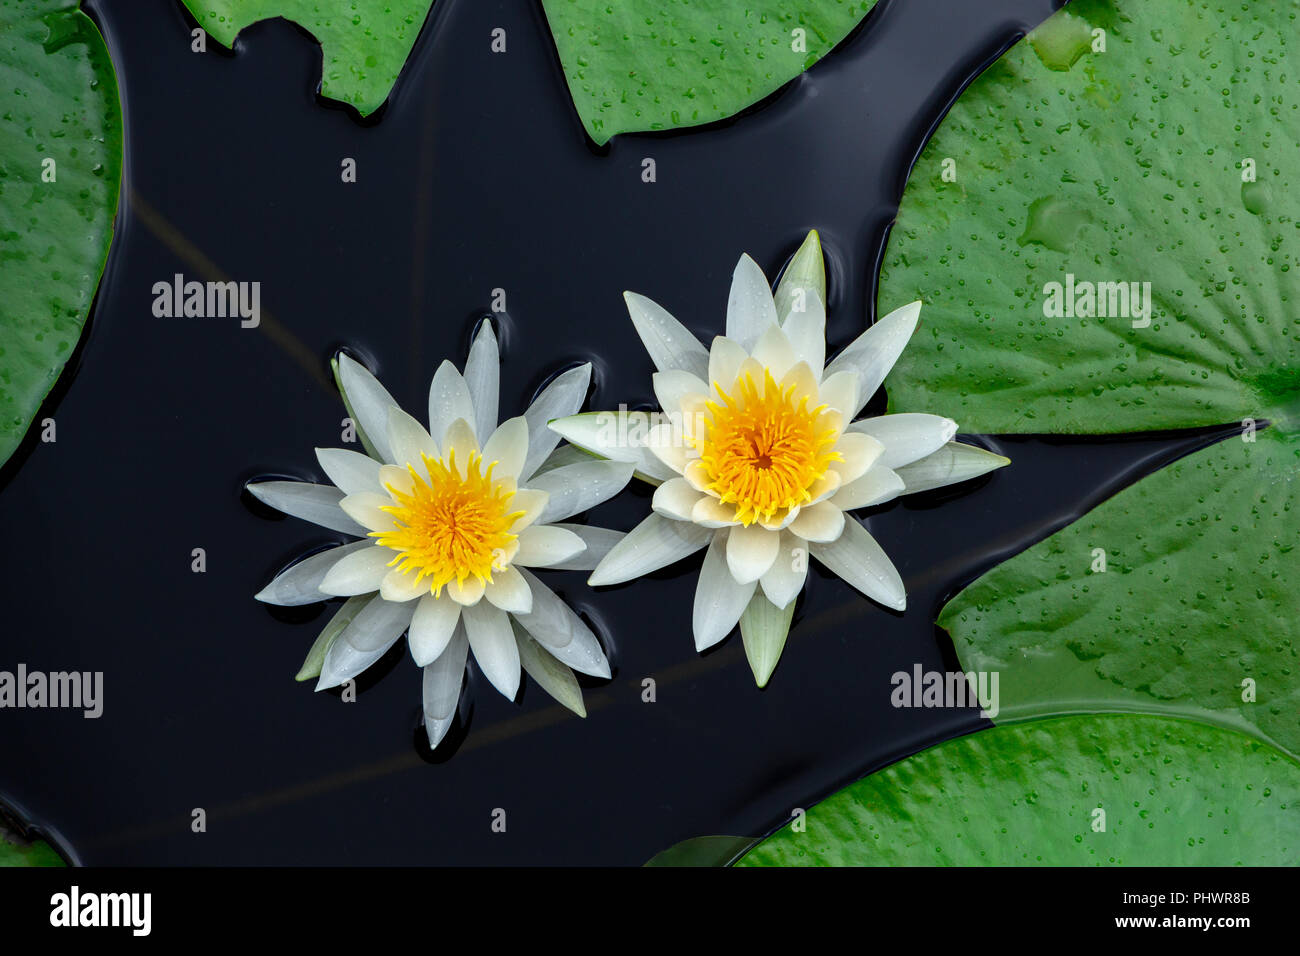 Green Lily Pads With White Flowers Stock Photos Green Lily Pads